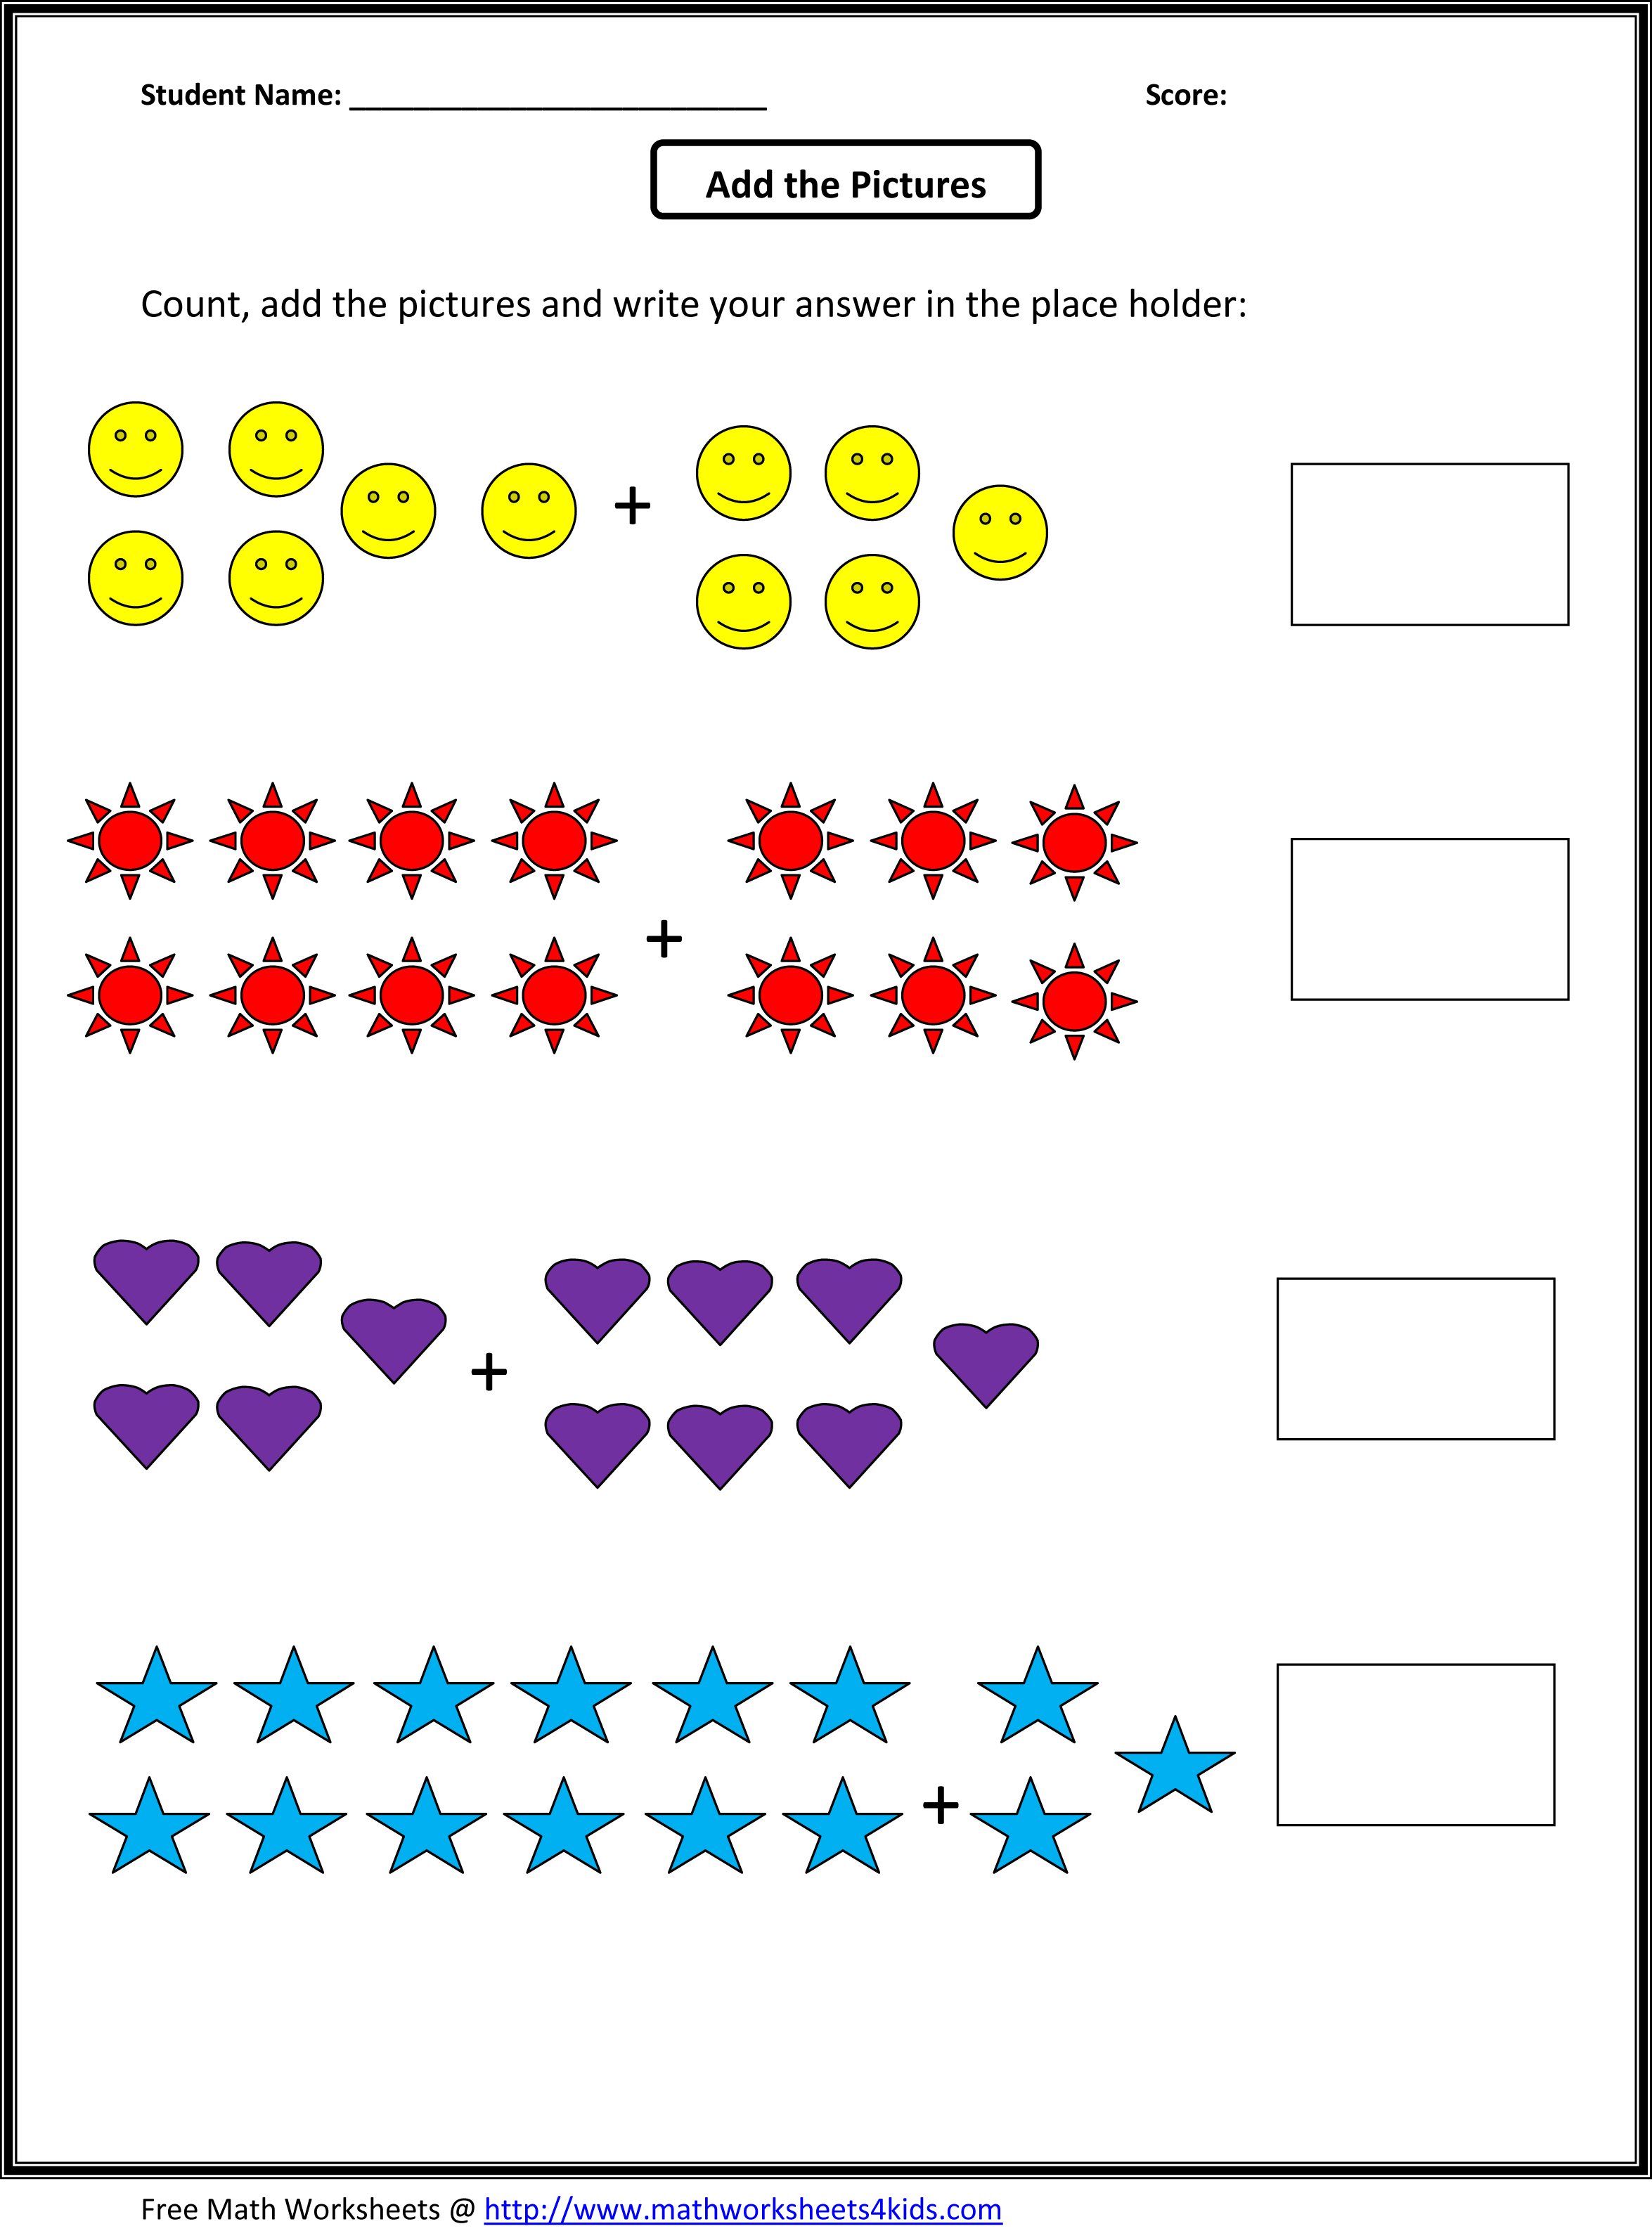 Proatmealus  Seductive Grade  Maths Worksheet  Reocurent With Marvelous Math Worksheets For St Grade Free  Reocurent With Beauteous Long A Short A Worksheet Also Math Speed Drills Worksheets In Addition Expressions With Variables Worksheets And Kinds Of Nouns Worksheets As Well As Vertically Opposite Angles Worksheet Additionally Writing For Kids Worksheets From Reocurentcom With Proatmealus  Marvelous Grade  Maths Worksheet  Reocurent With Beauteous Math Worksheets For St Grade Free  Reocurent And Seductive Long A Short A Worksheet Also Math Speed Drills Worksheets In Addition Expressions With Variables Worksheets From Reocurentcom